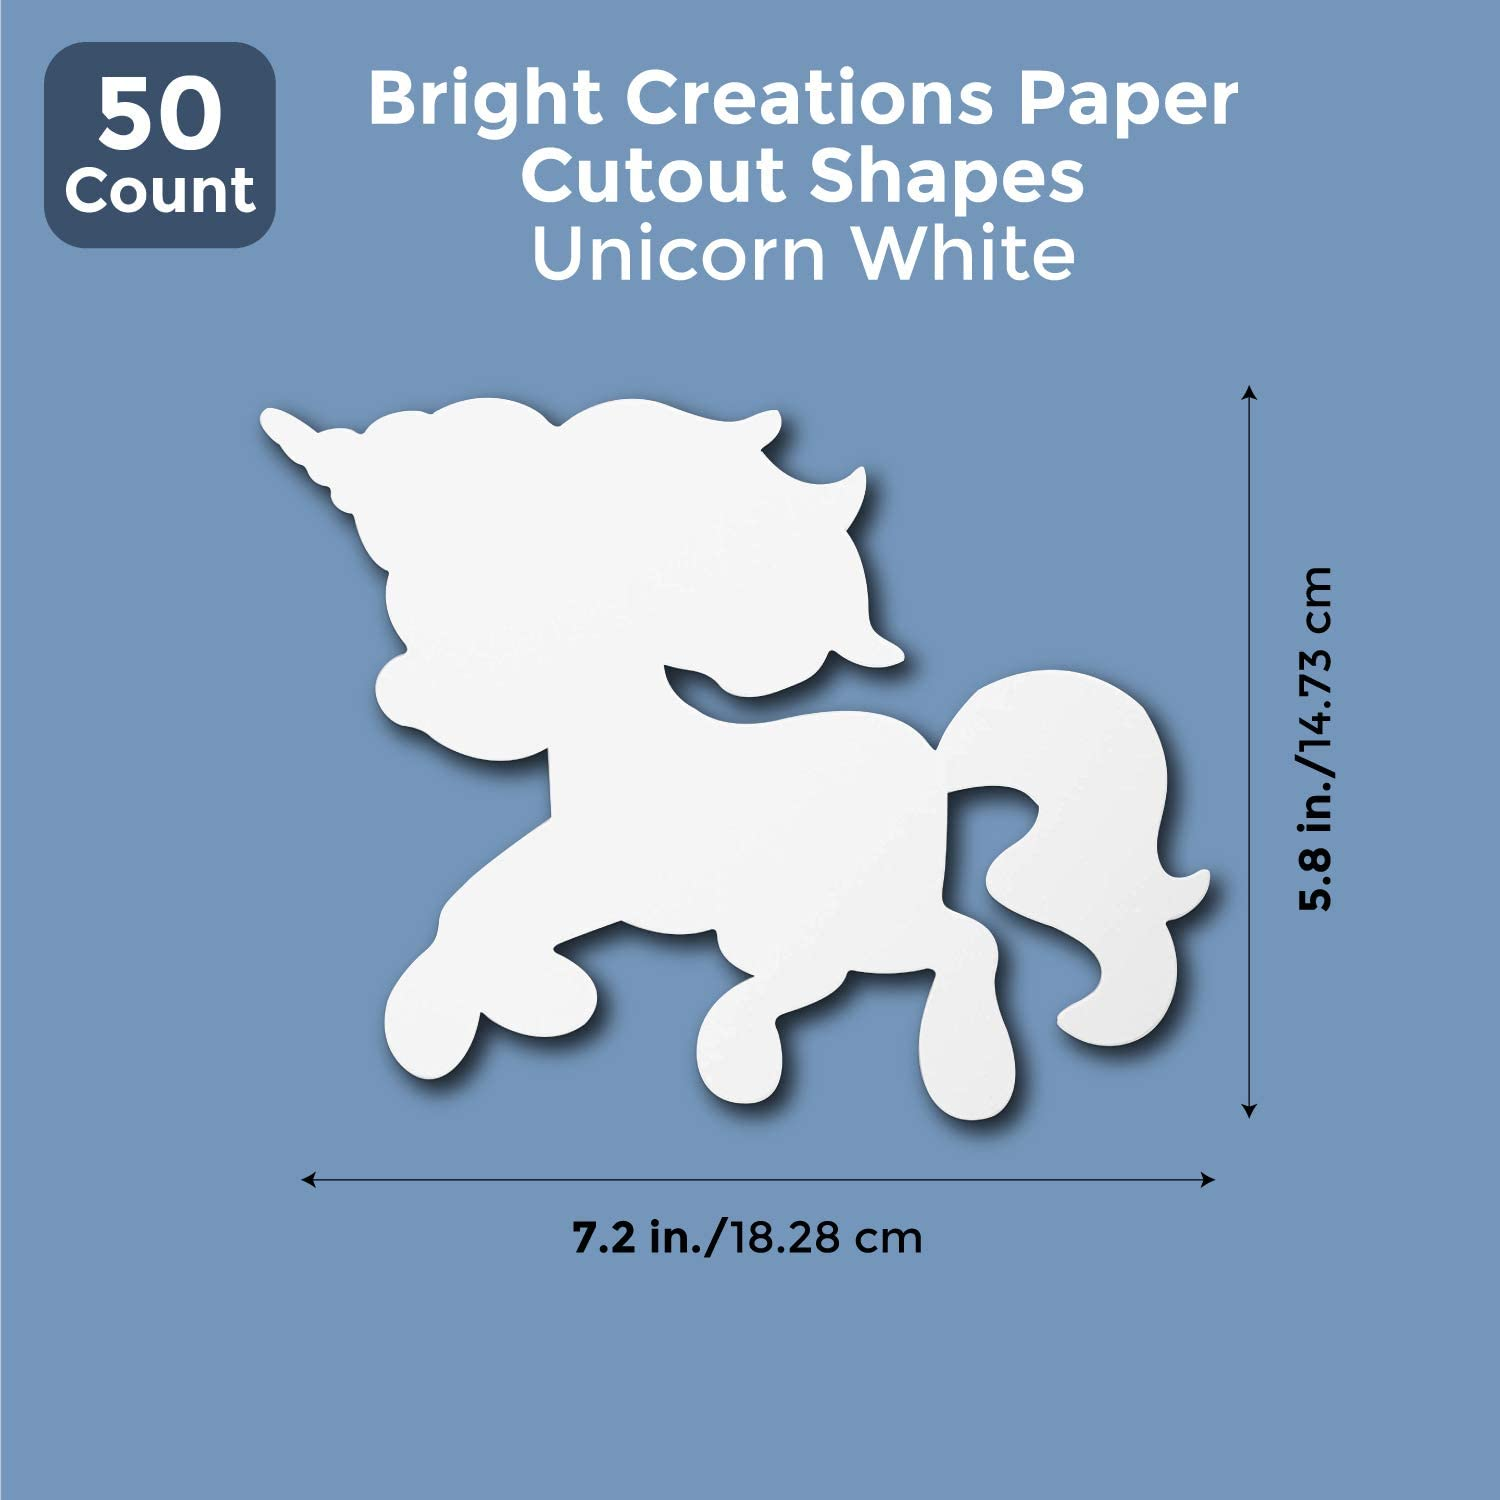 Unicorn 7 x 6 Inches Bright Creations Paper Cutout Shapes White 50 Count